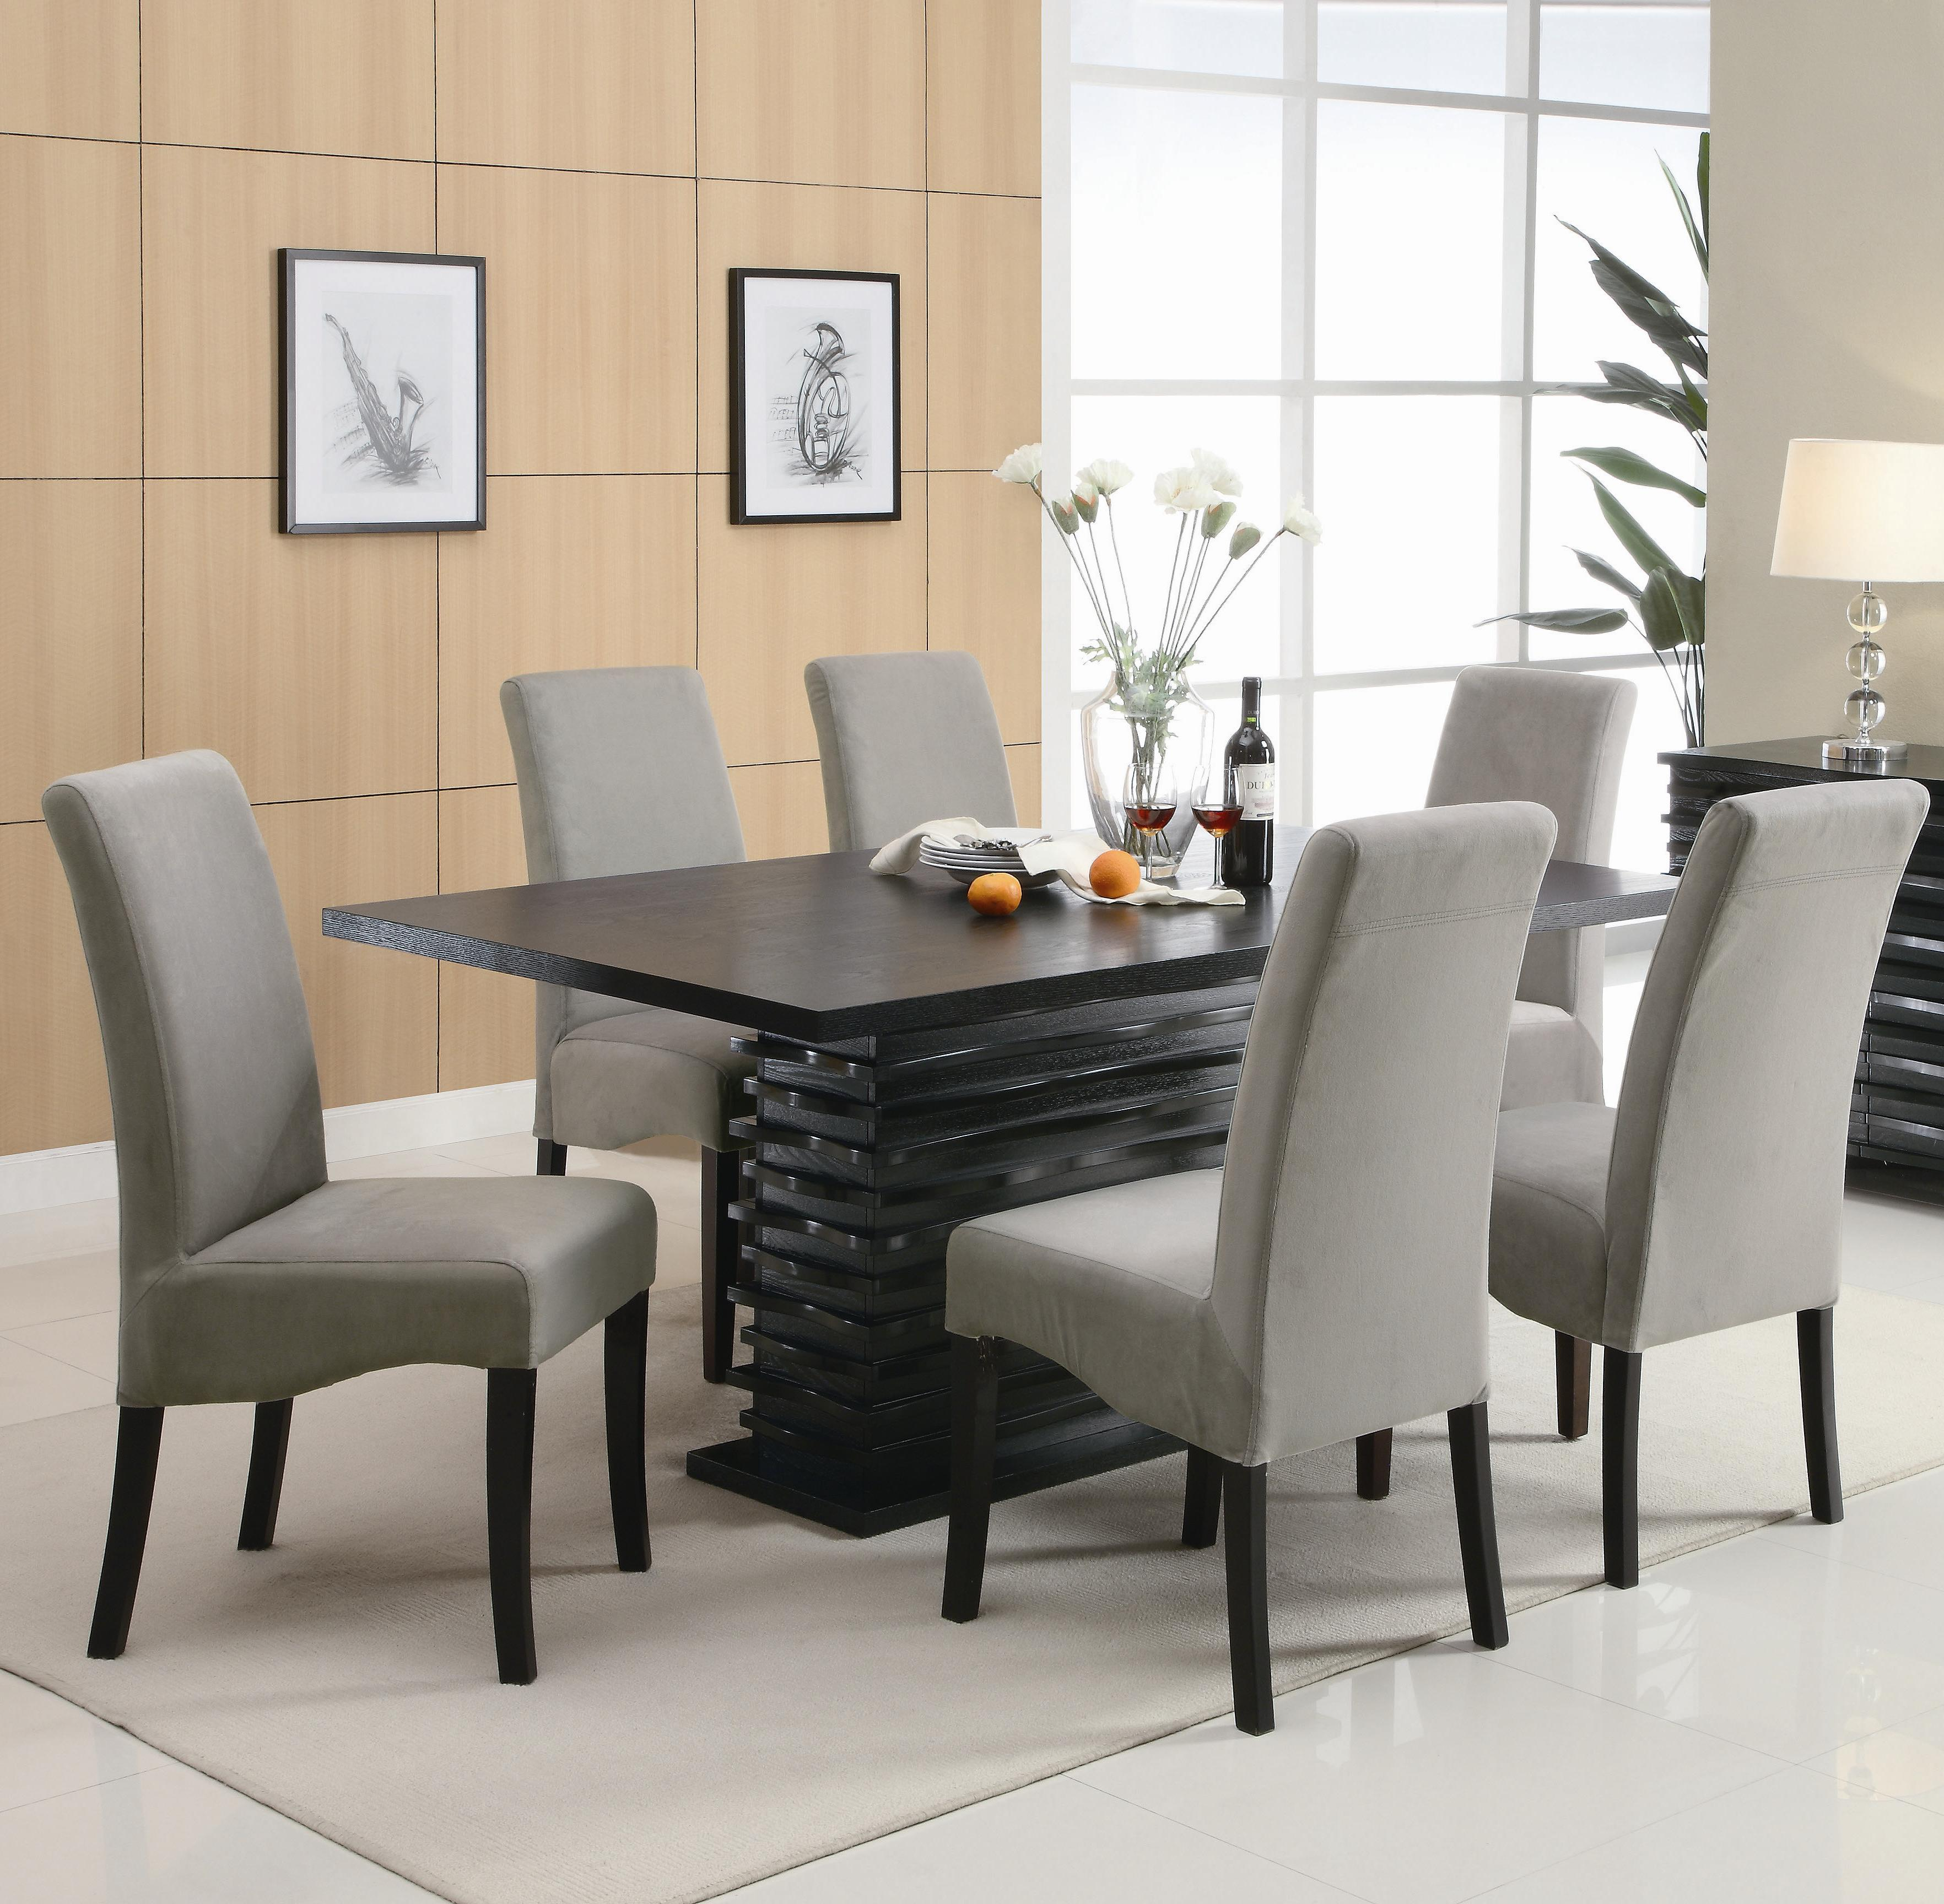 Stanton  7 Piece Table and Chair Set by Coaster at Northeast Factory Direct